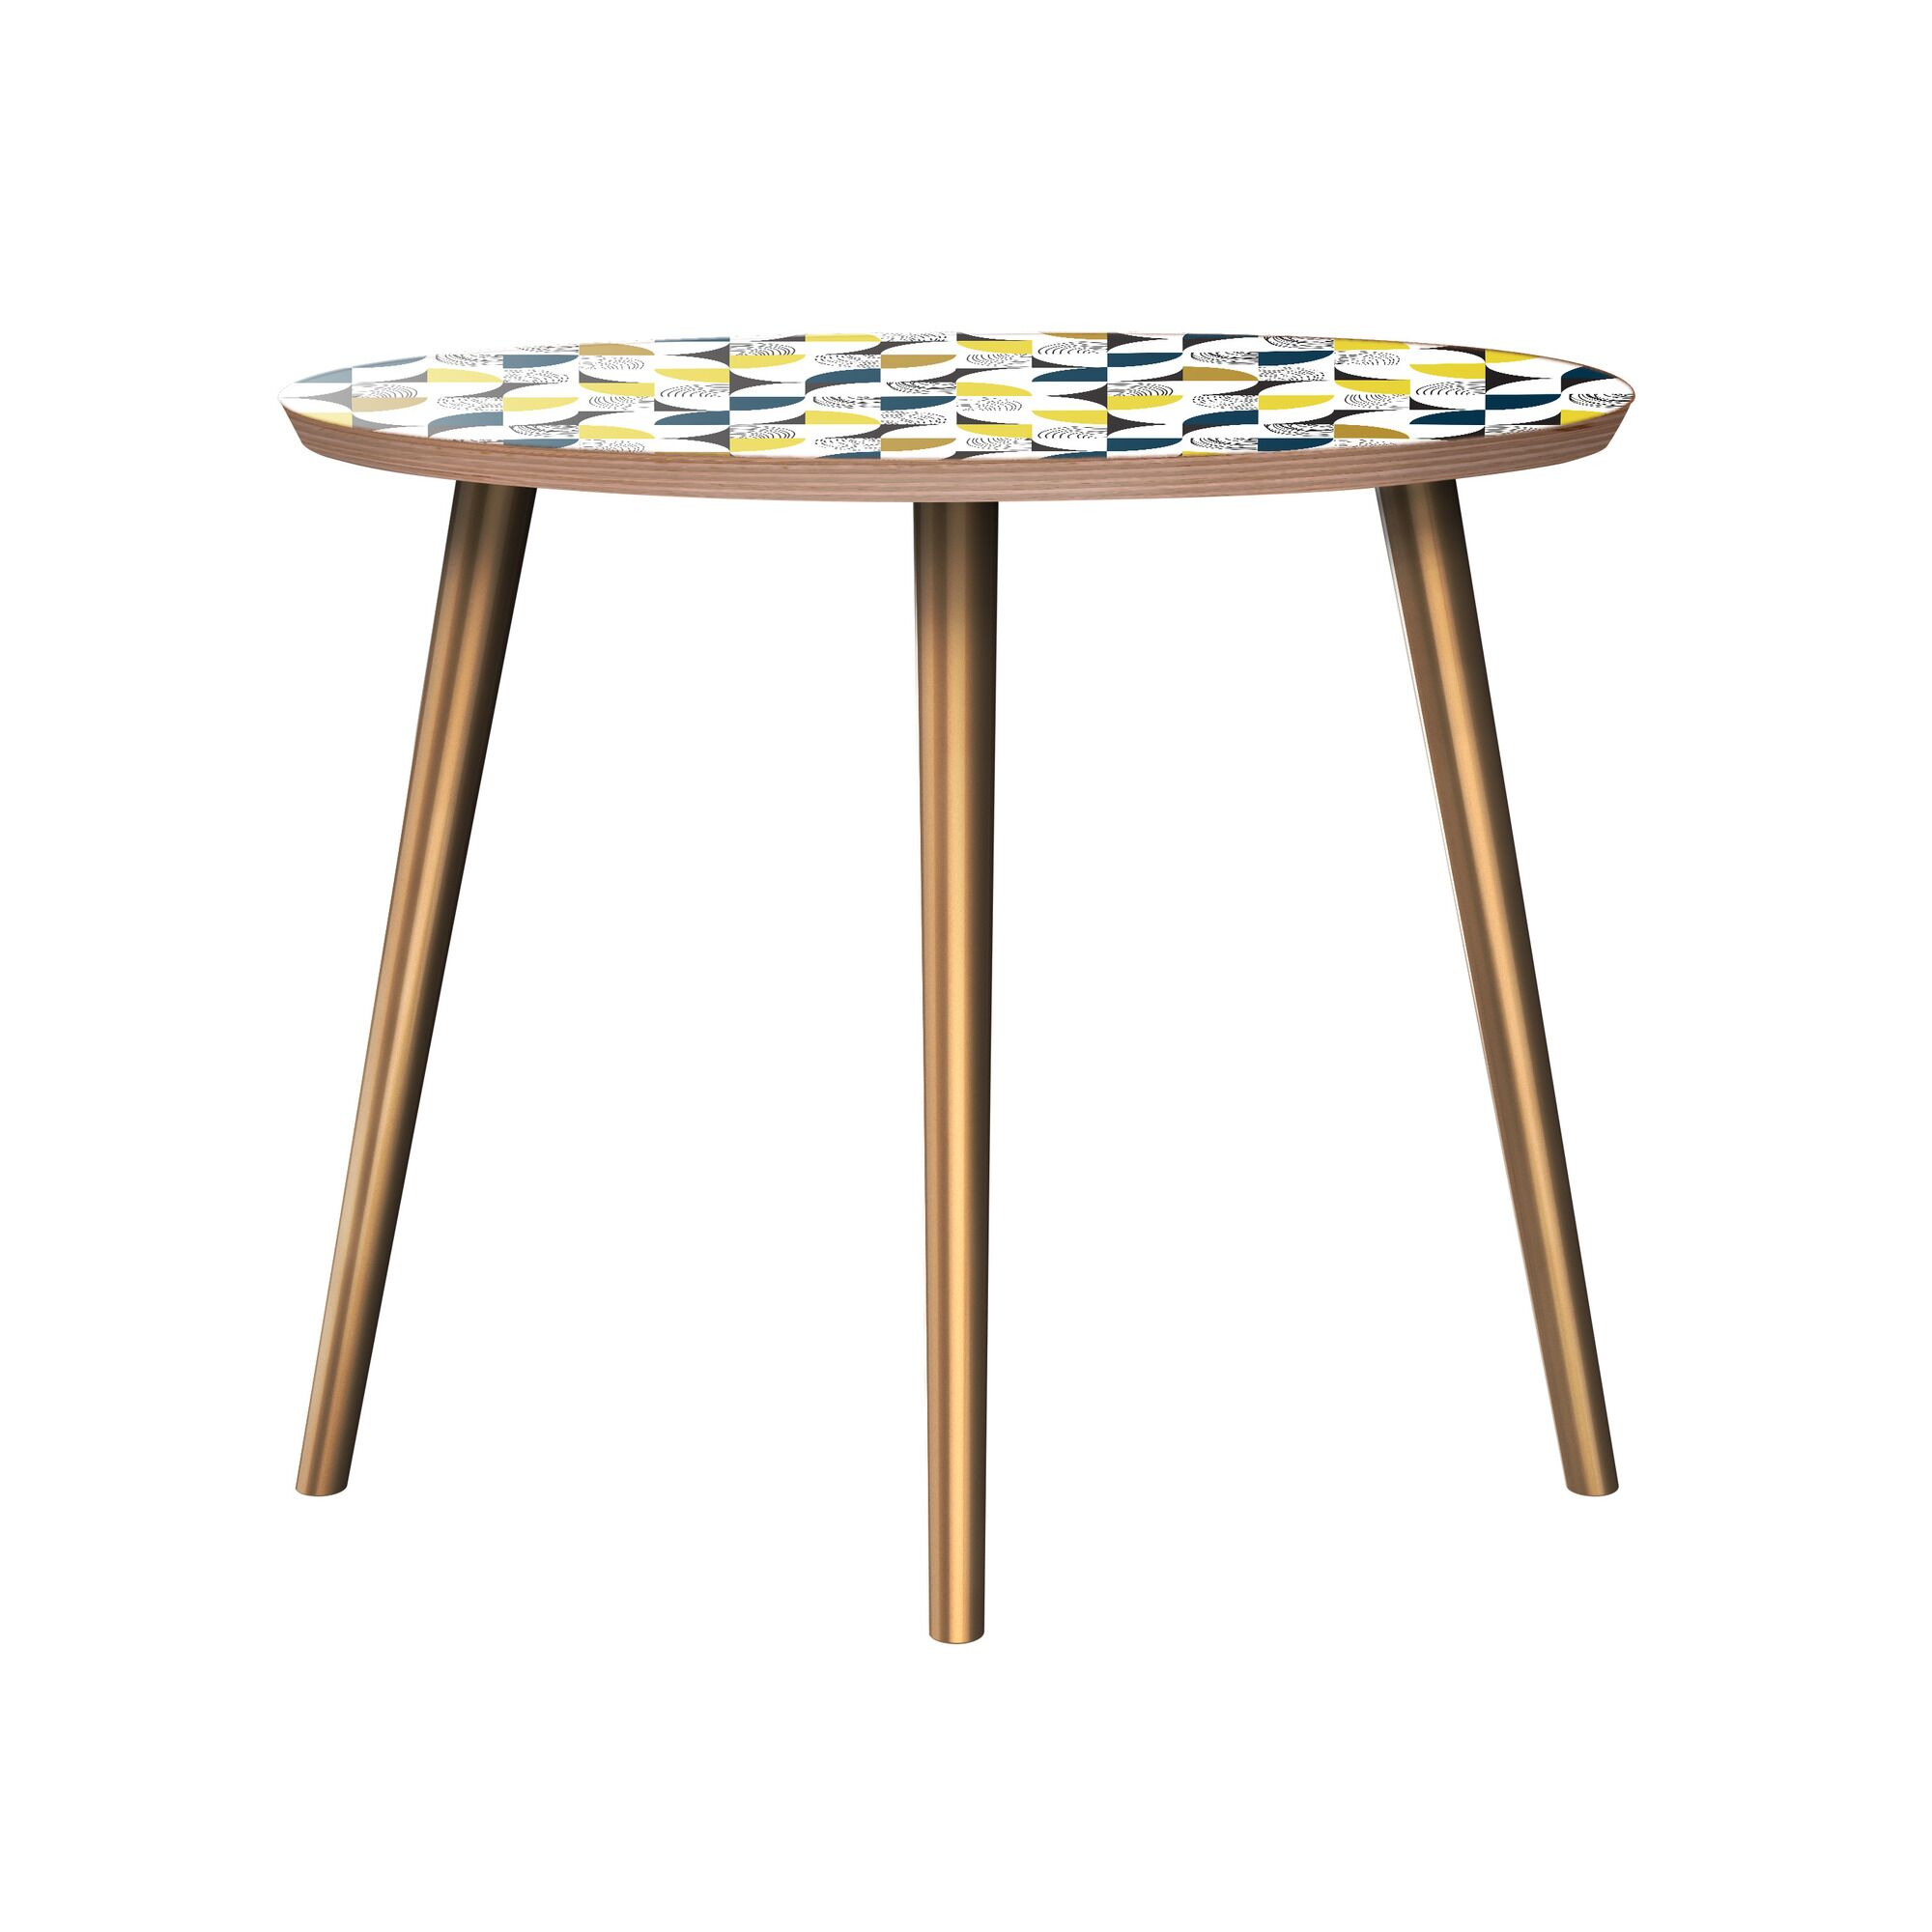 Kruze End Table Table Base Color: Brass, Table Top Color: Walnut